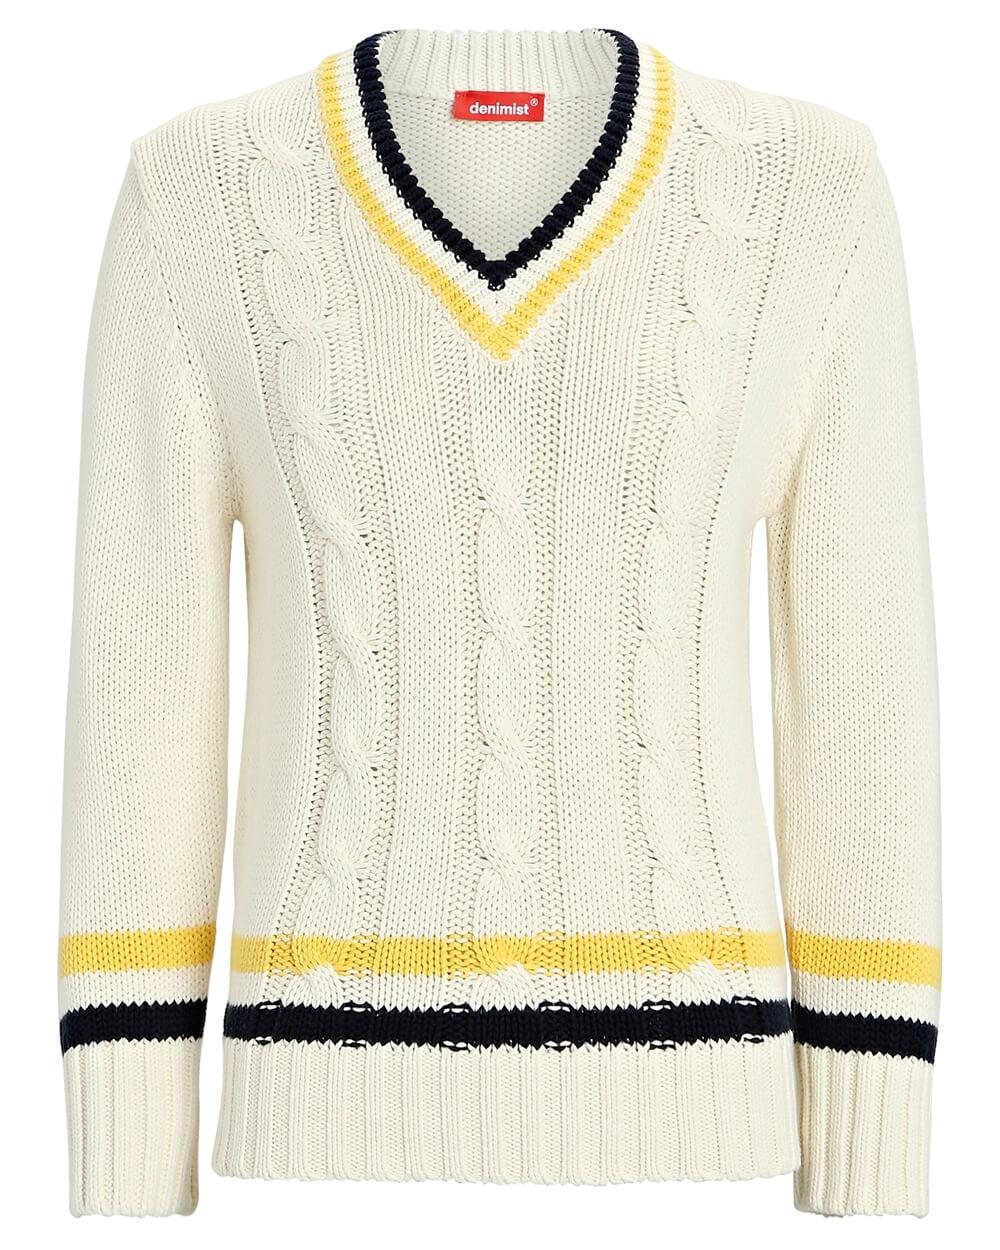 Shrunken Tennis Sweater